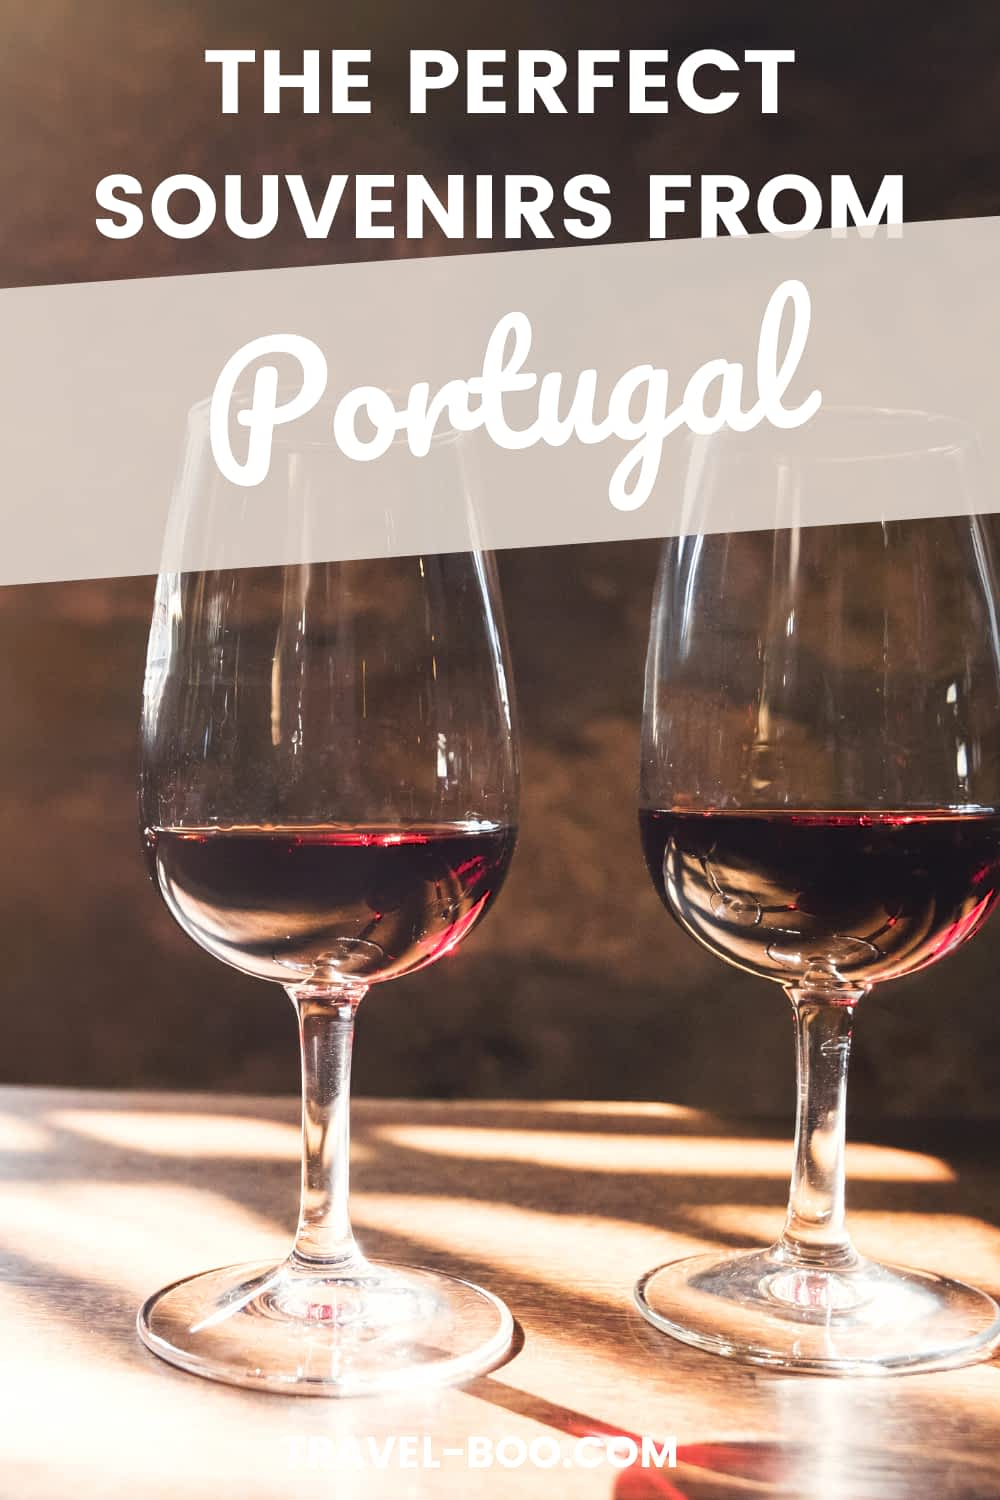 10 Top Portuguese Souvenirs - What to Buy in Portugal! Portugal Travel Guide, Portugal Travel Souvenirs, Portugal Travel Tips, Portugal Itinerary. #portugalsouvenirs #portugaltravel #portugaltraveltips